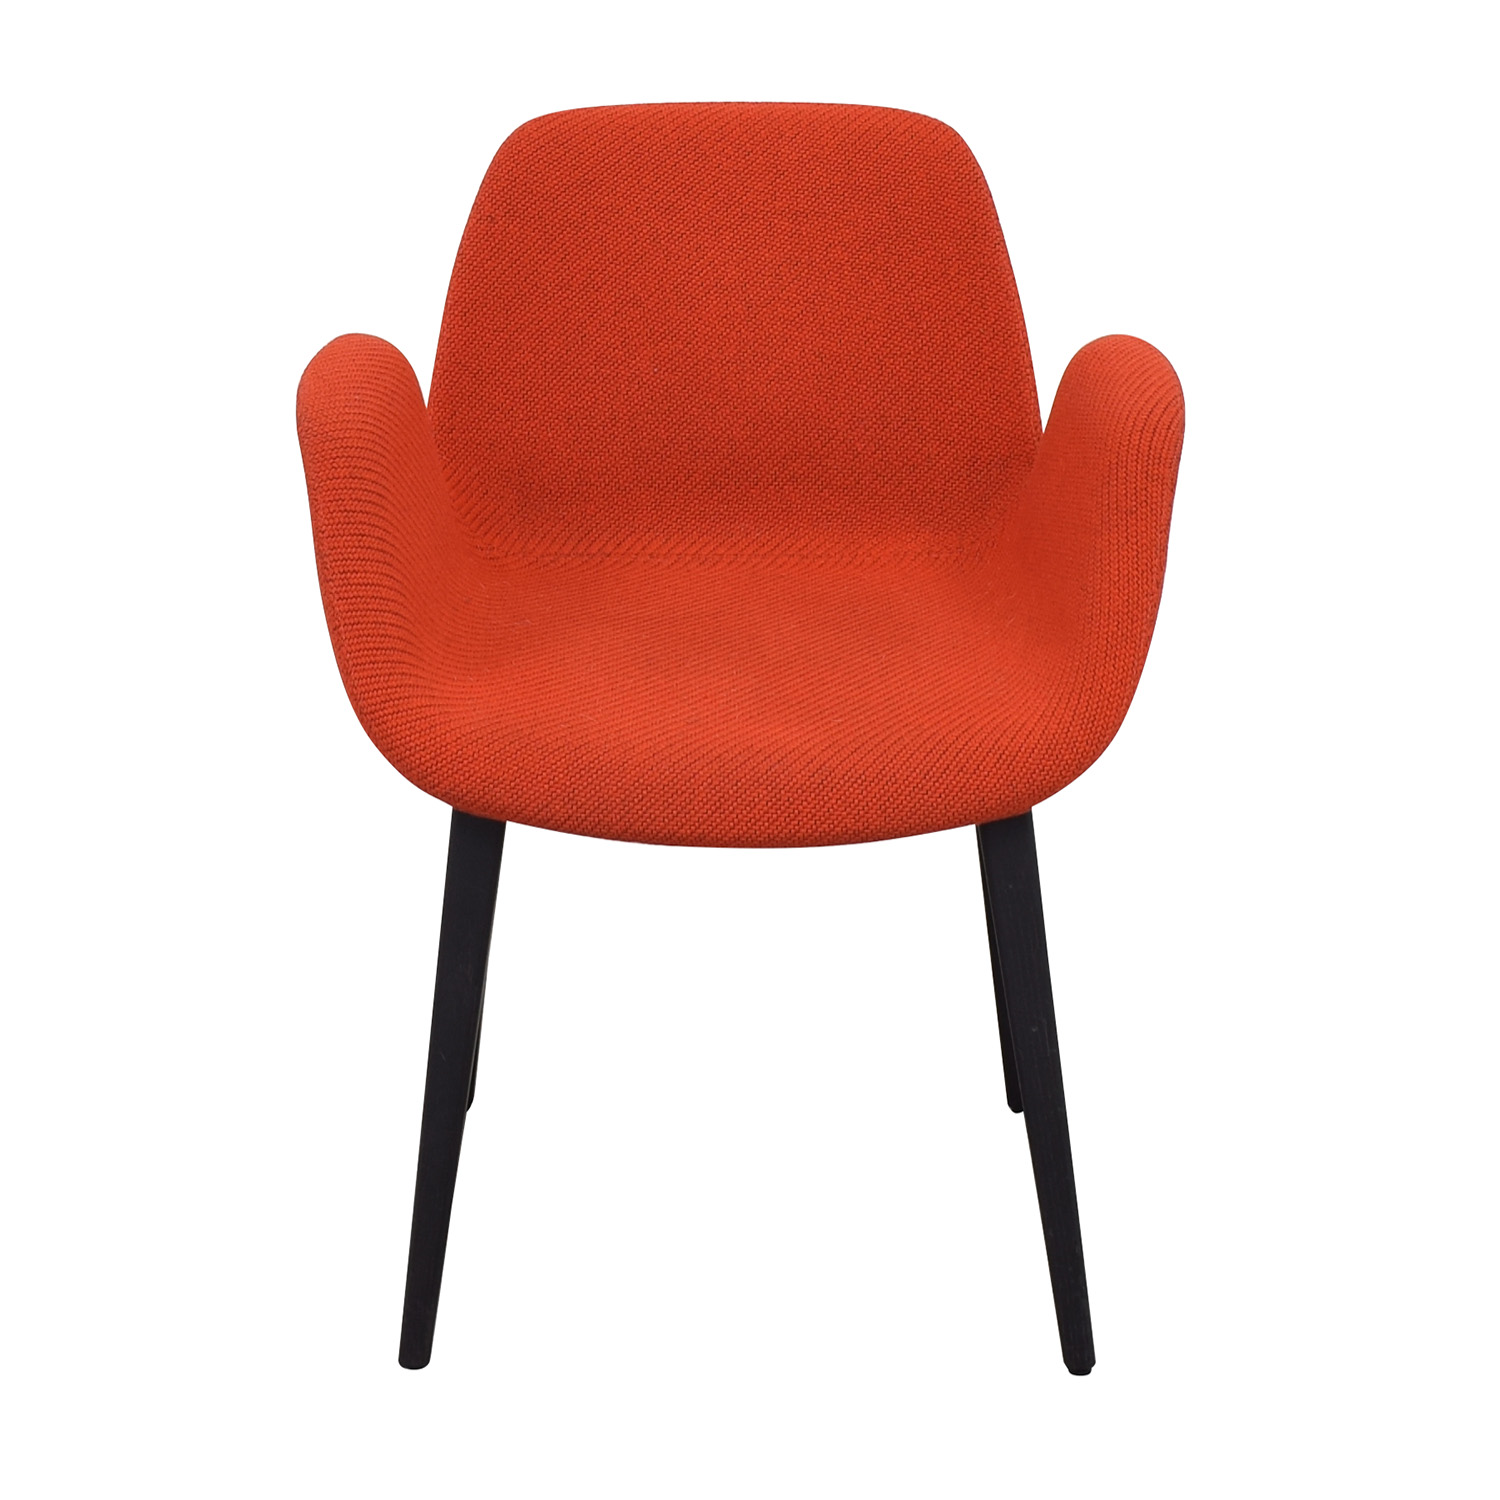 Koleksiyon Halia Arm Chair / Accent Chairs